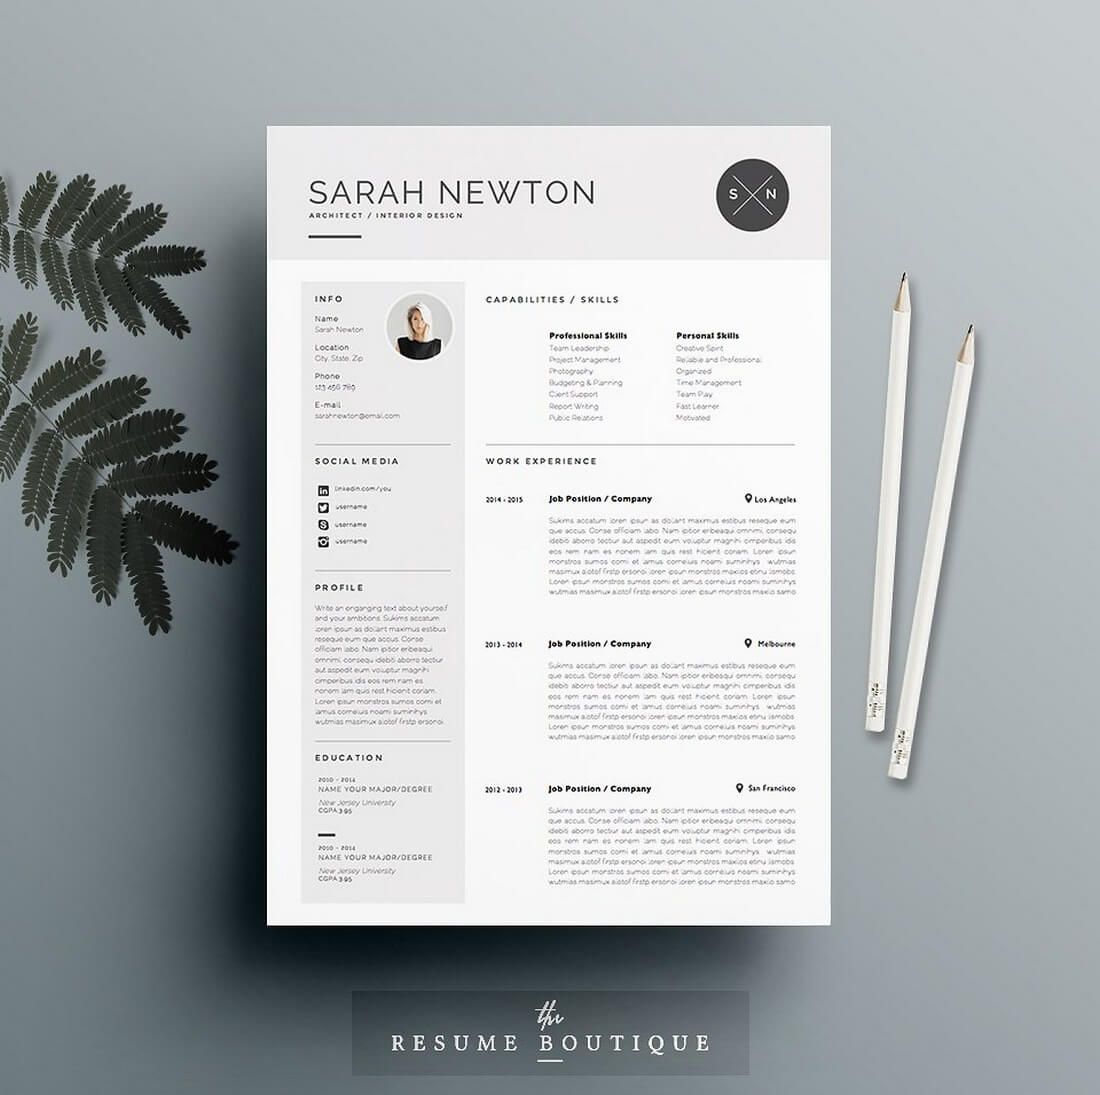 Moonlight 50+ Best CV & Resume Templates 2020 design tips